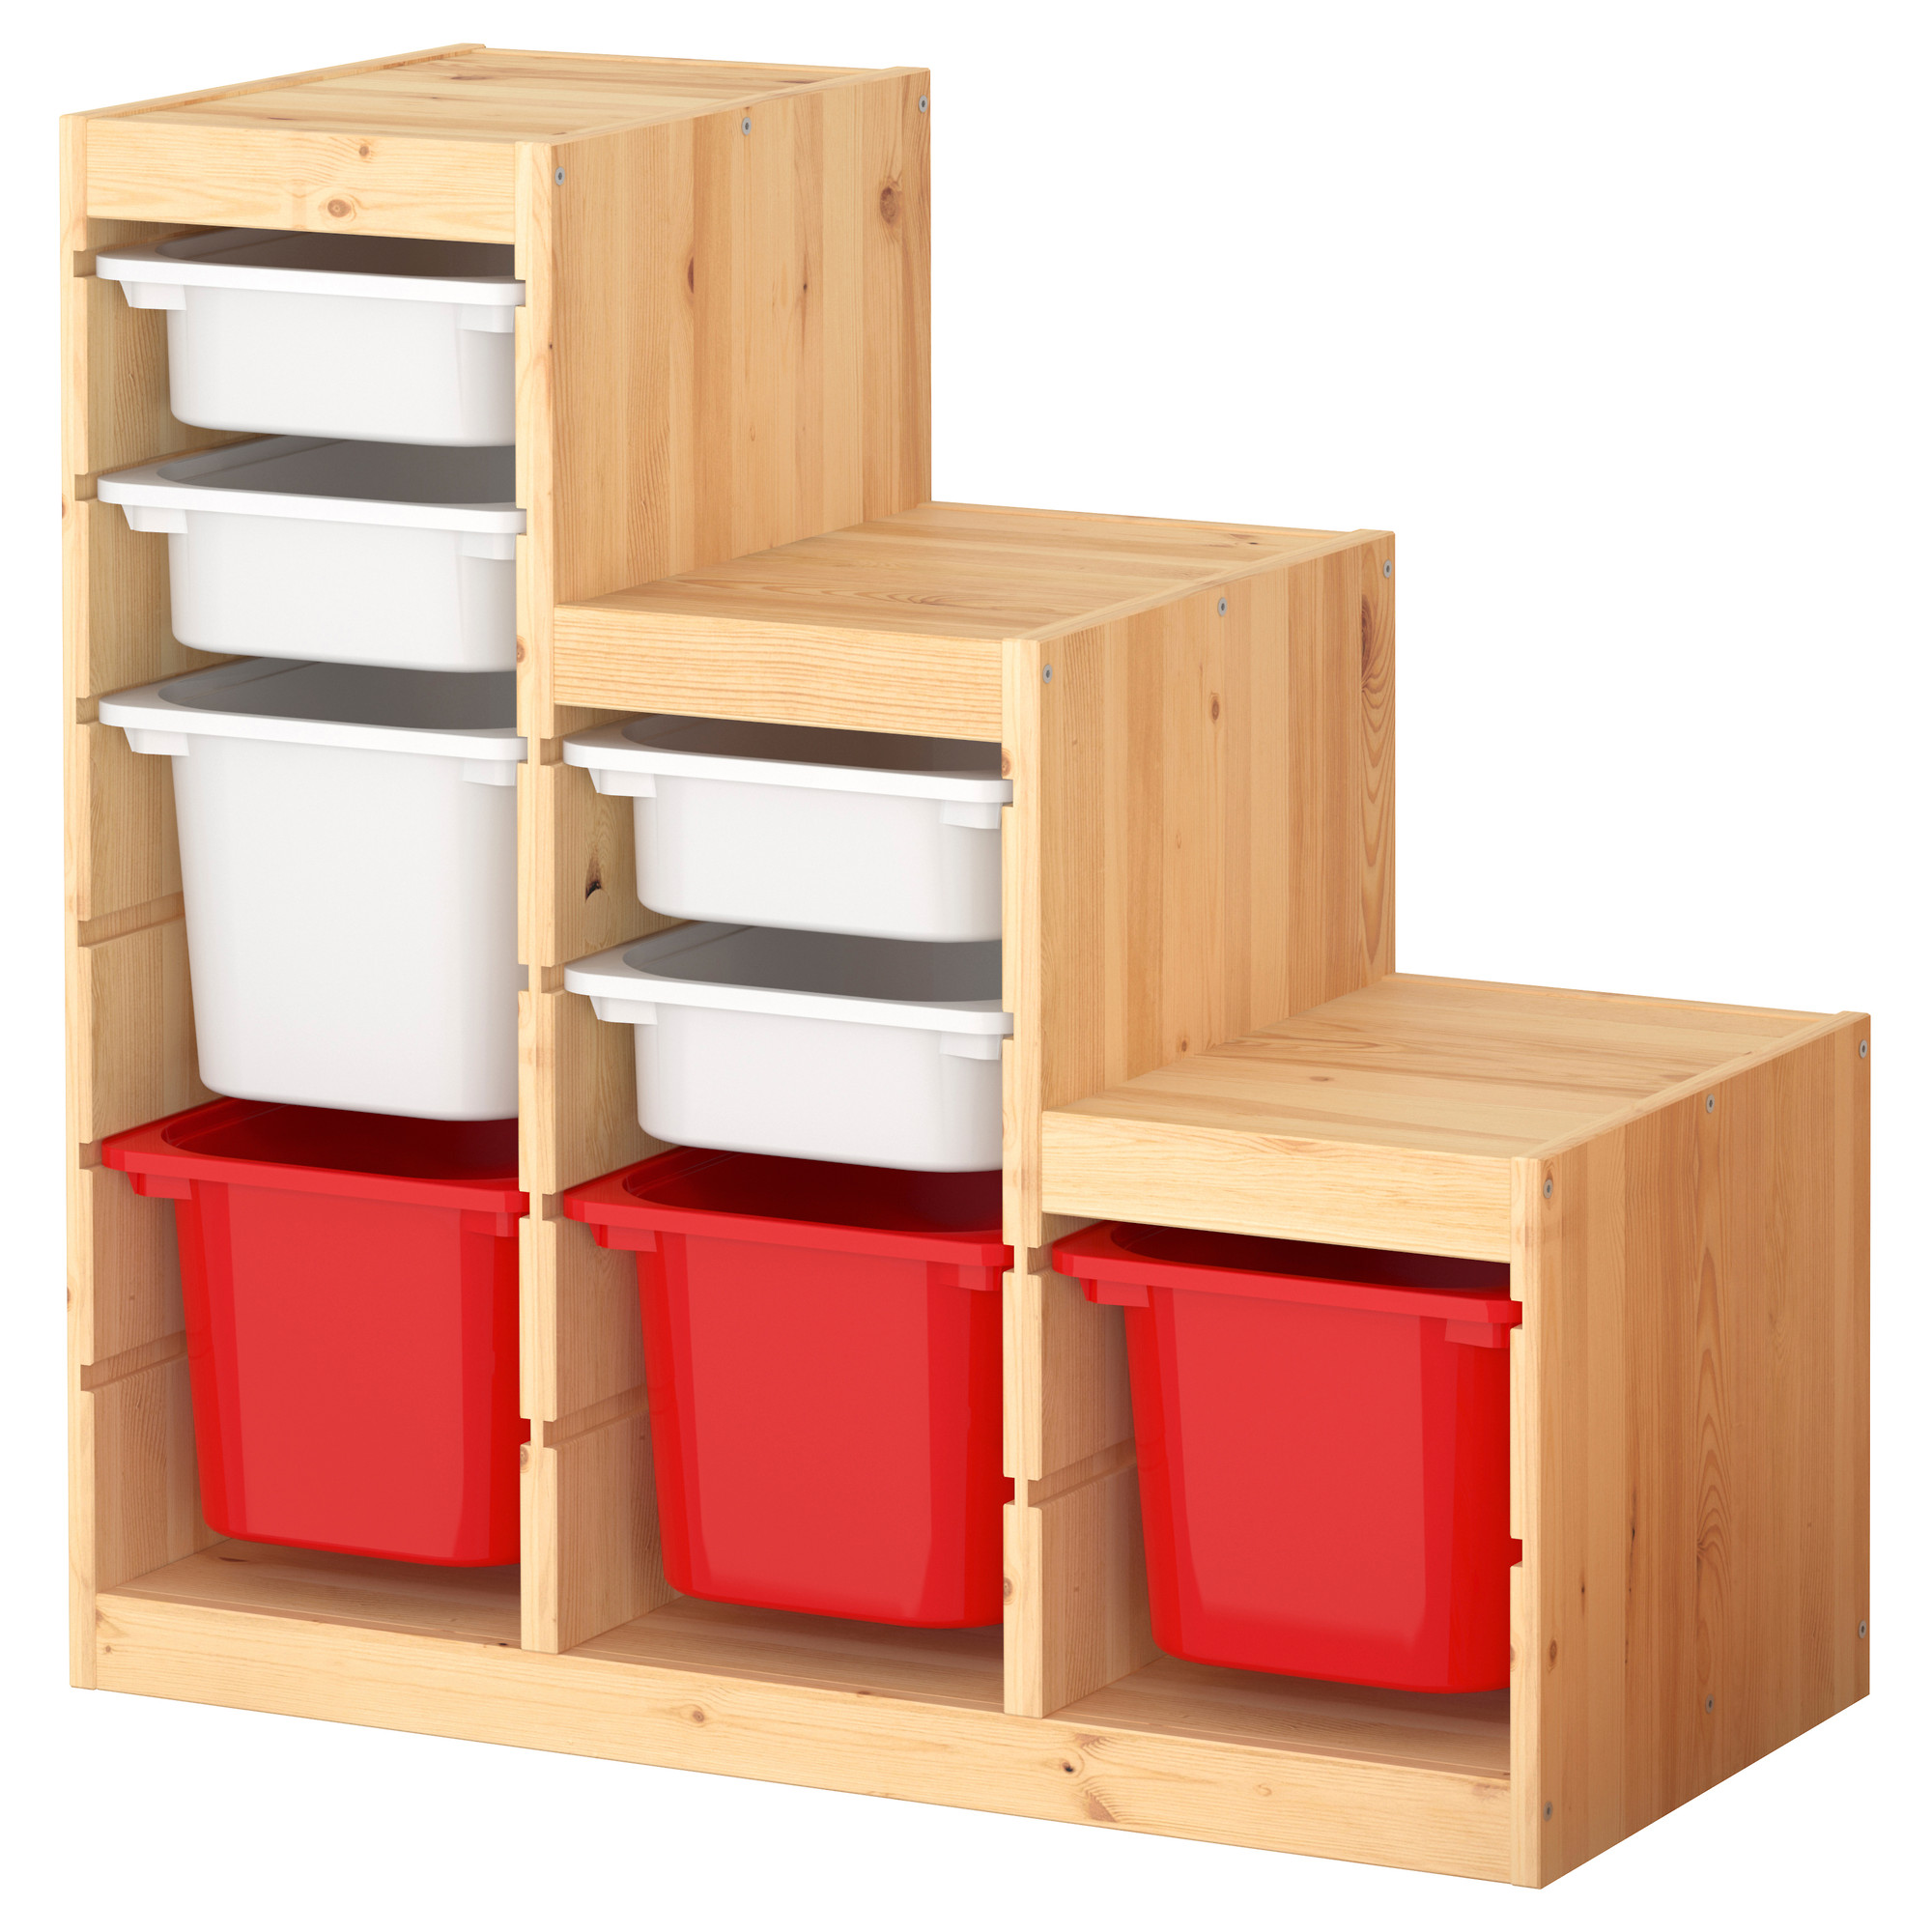 wooden ikea toy storage filled witheight boxes